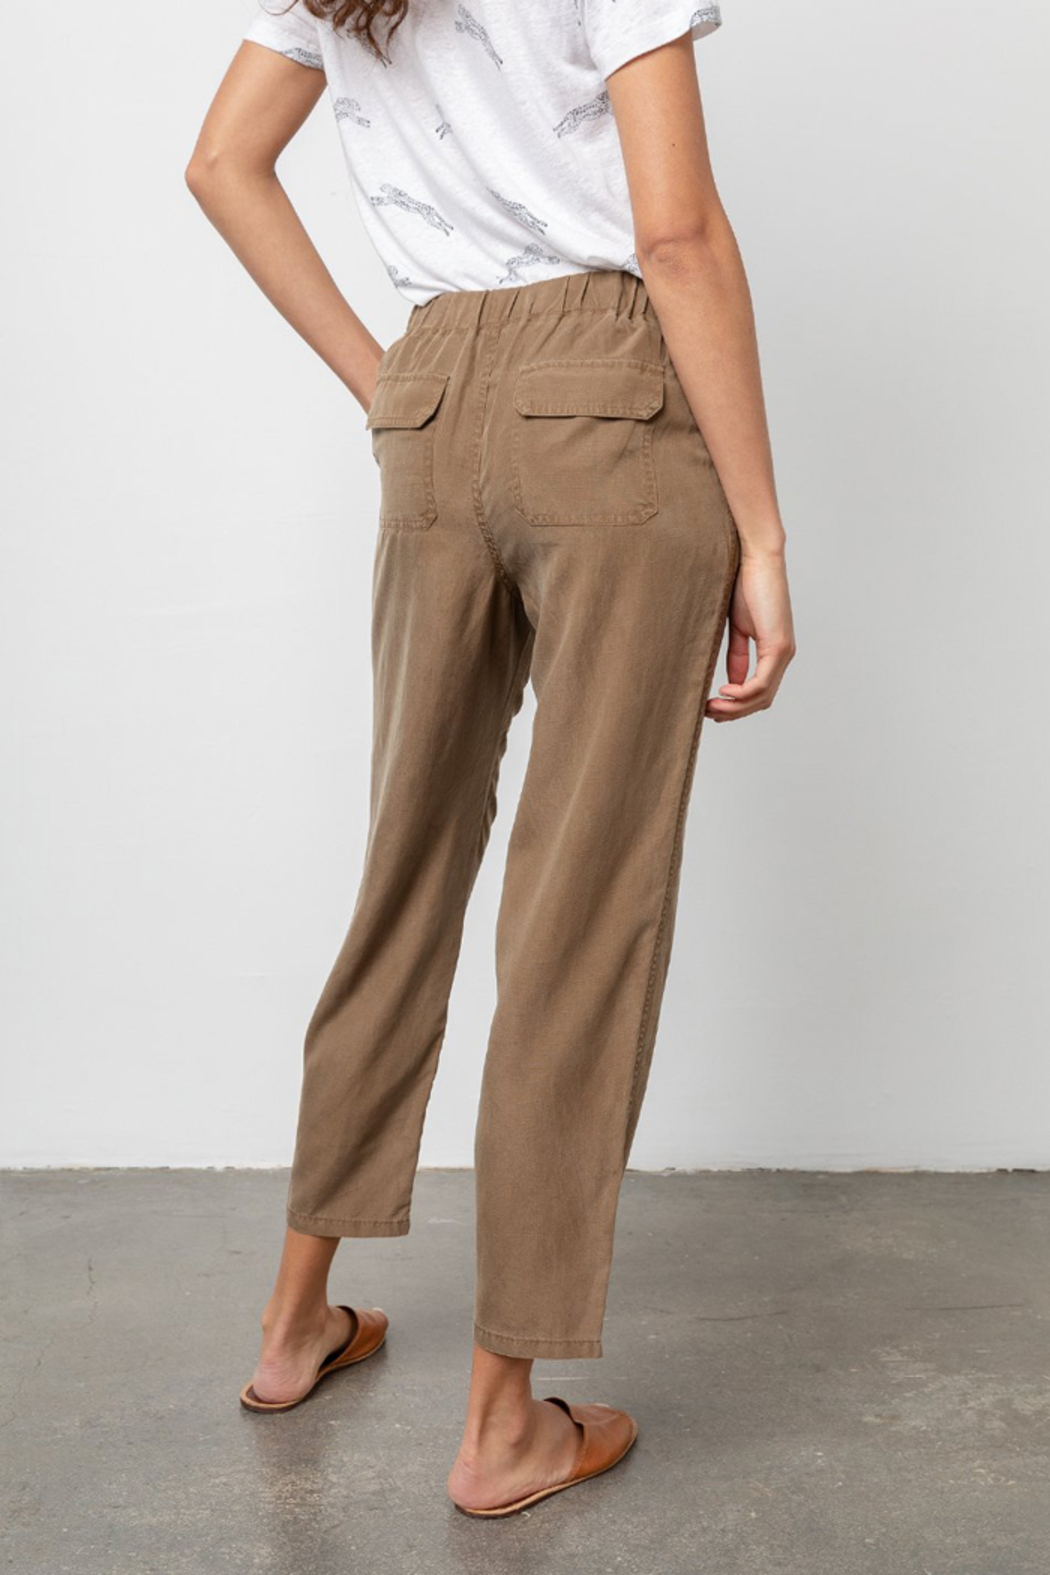 Rails Clothing RAILS JOGGER PANT - Side Cropped Image